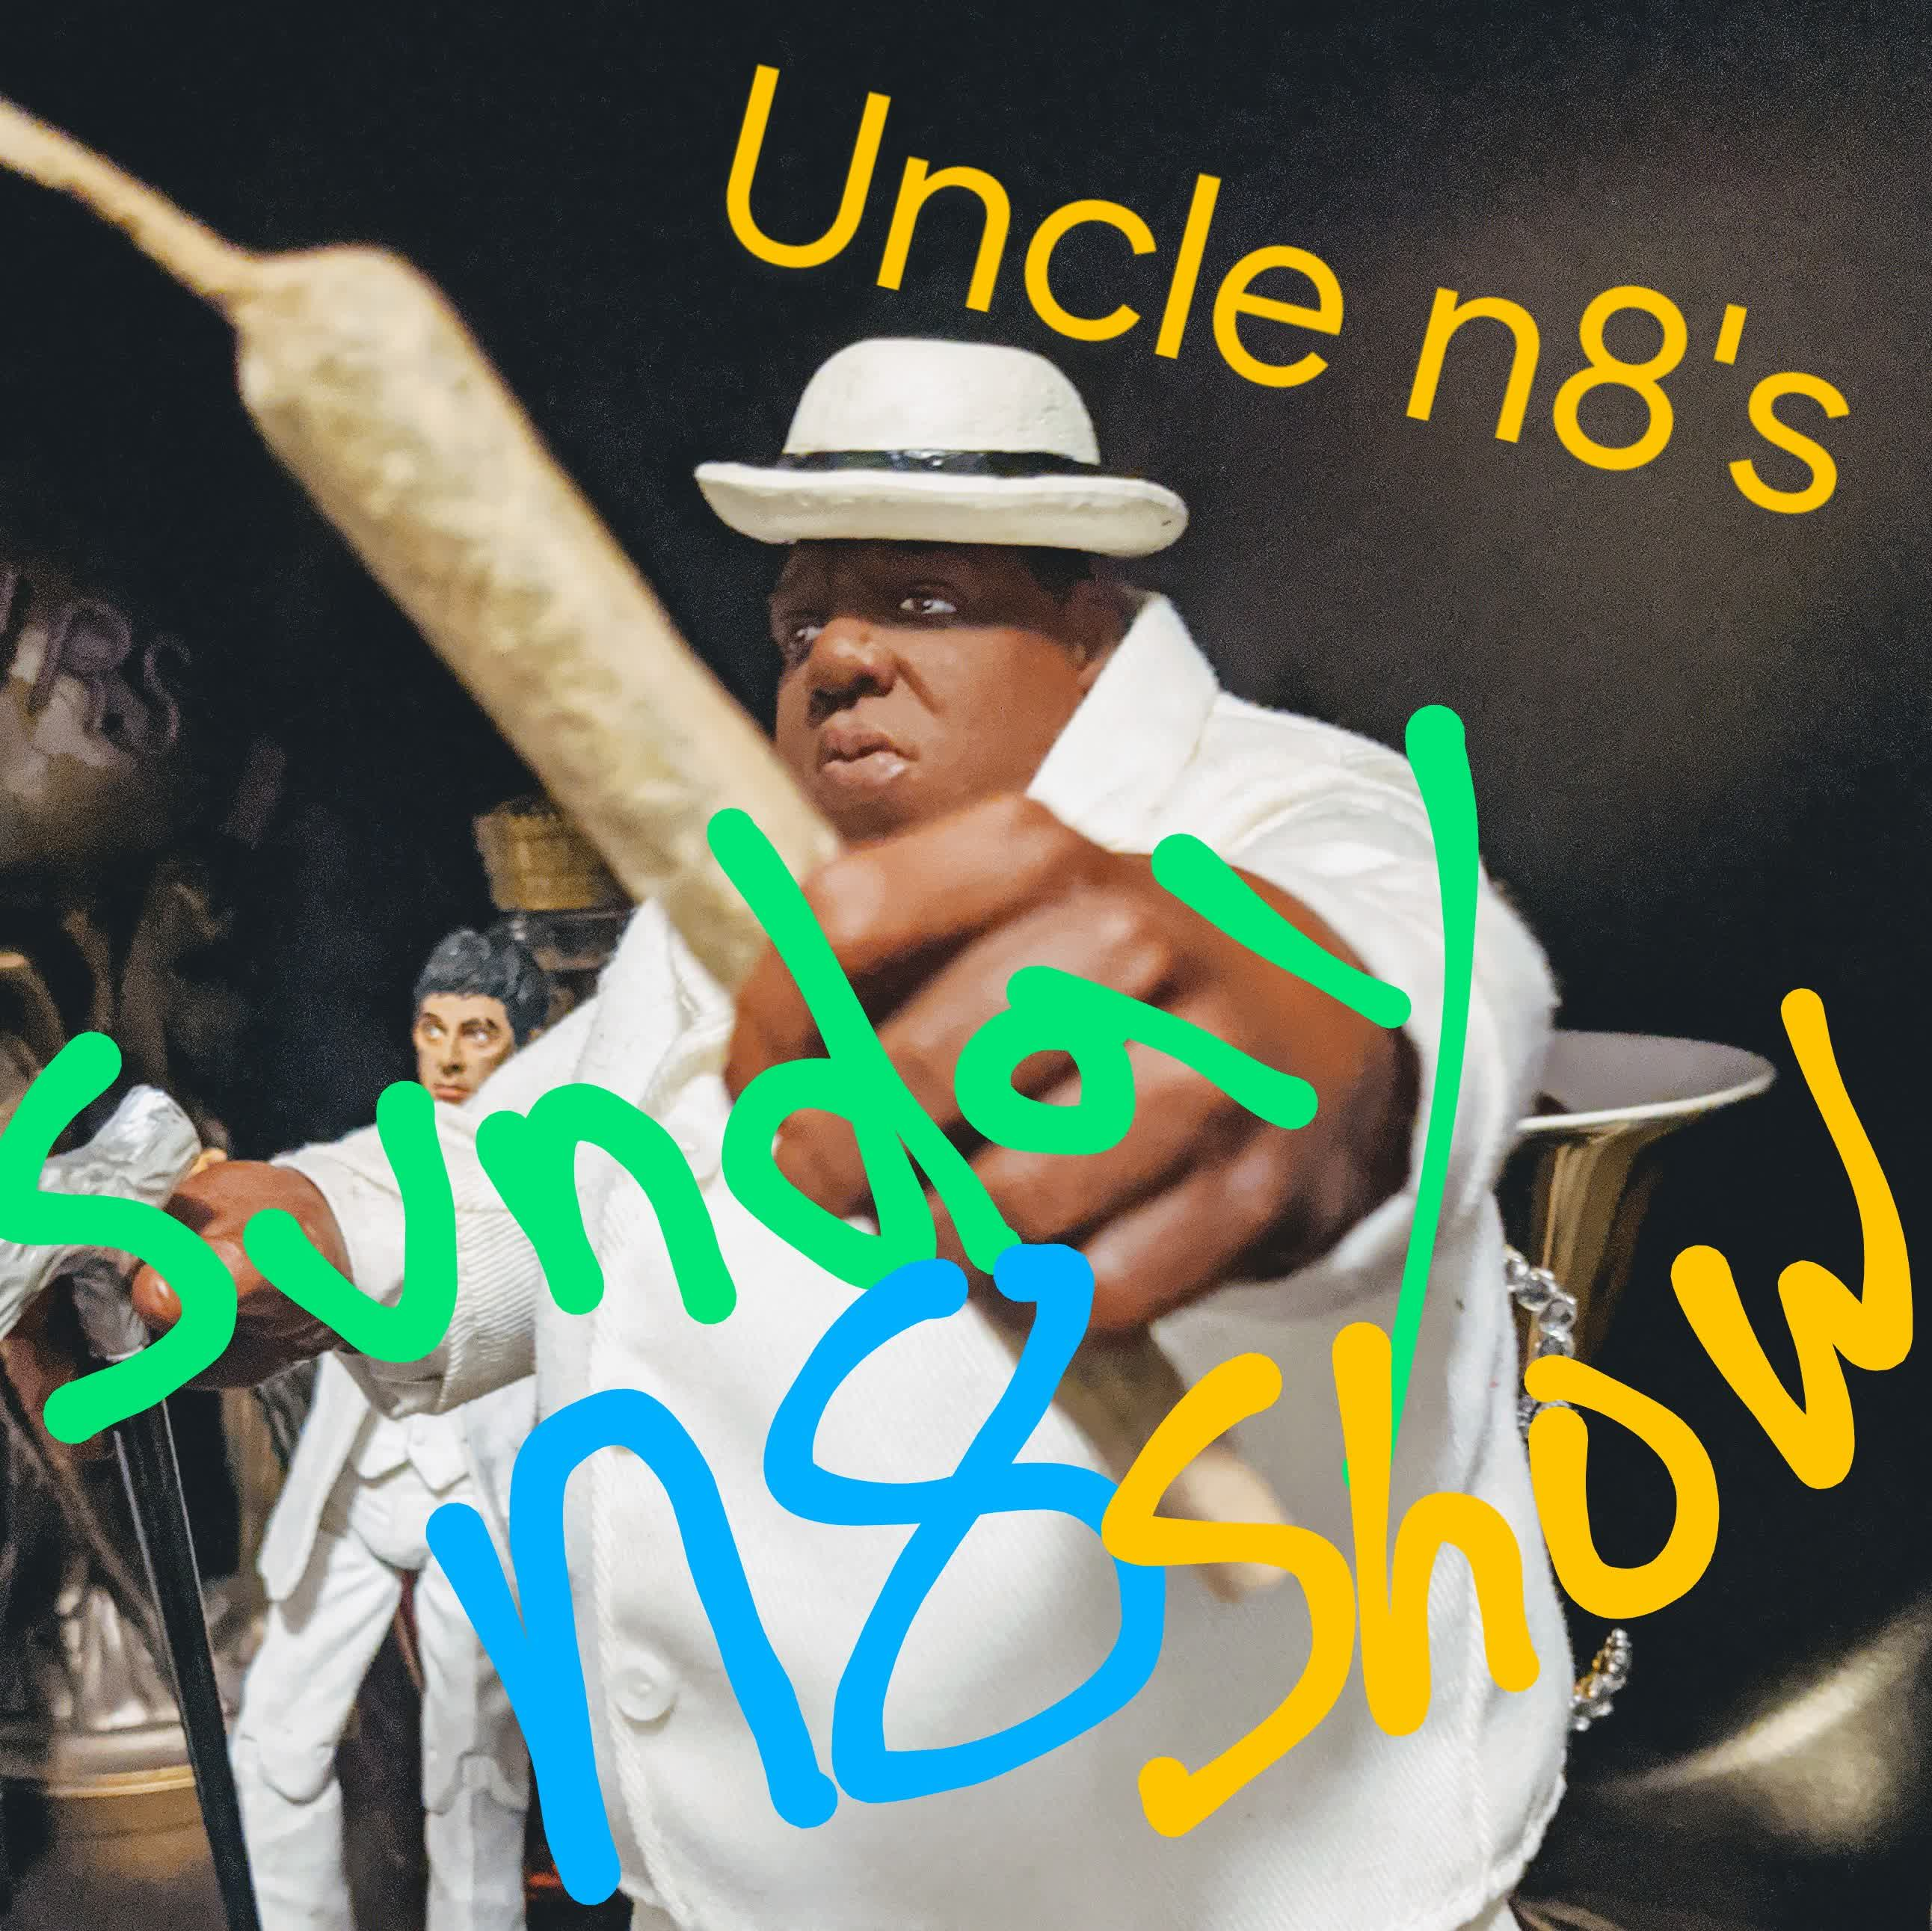 Uncle n8's Sunday n8 Show